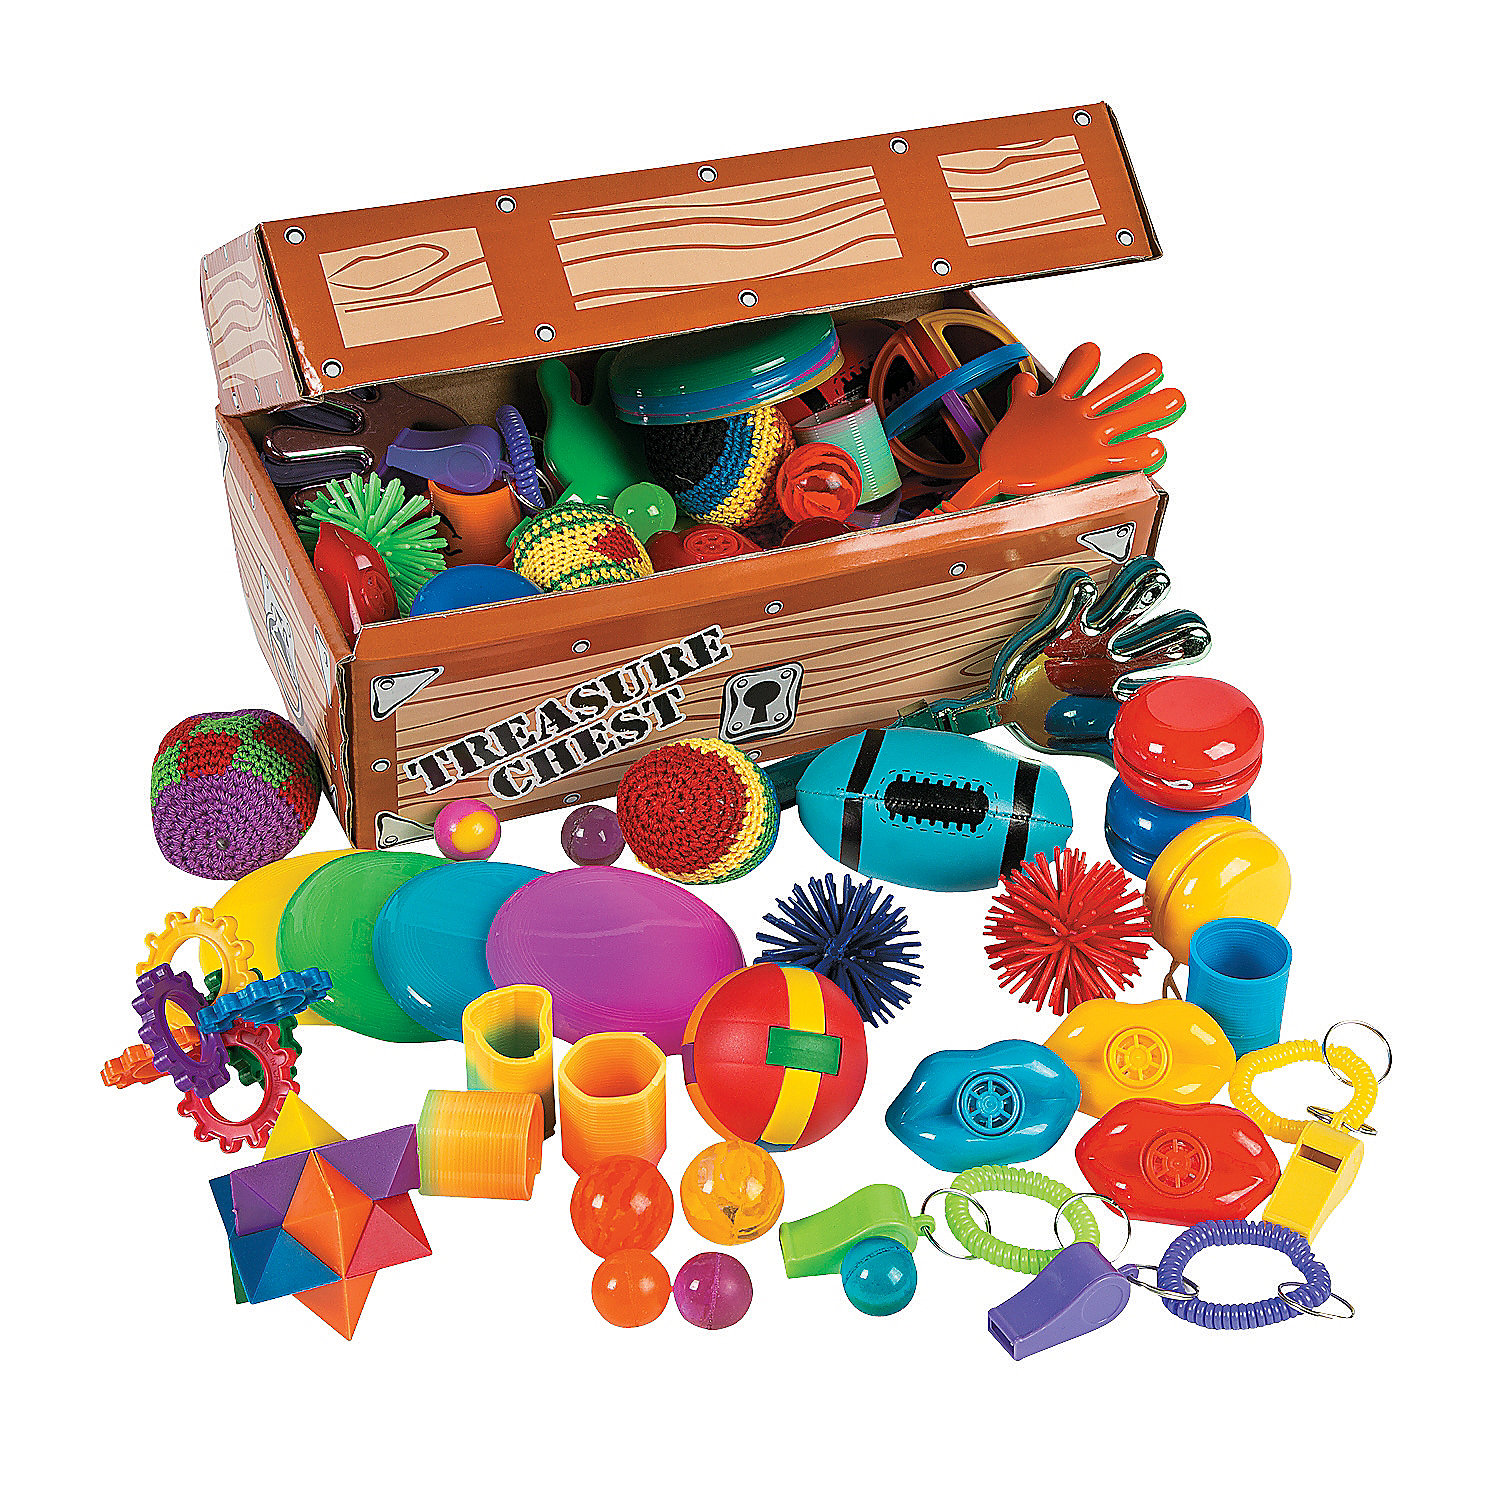 Toy Box Clip Art : Treasure chest with toy assortment oriental trading